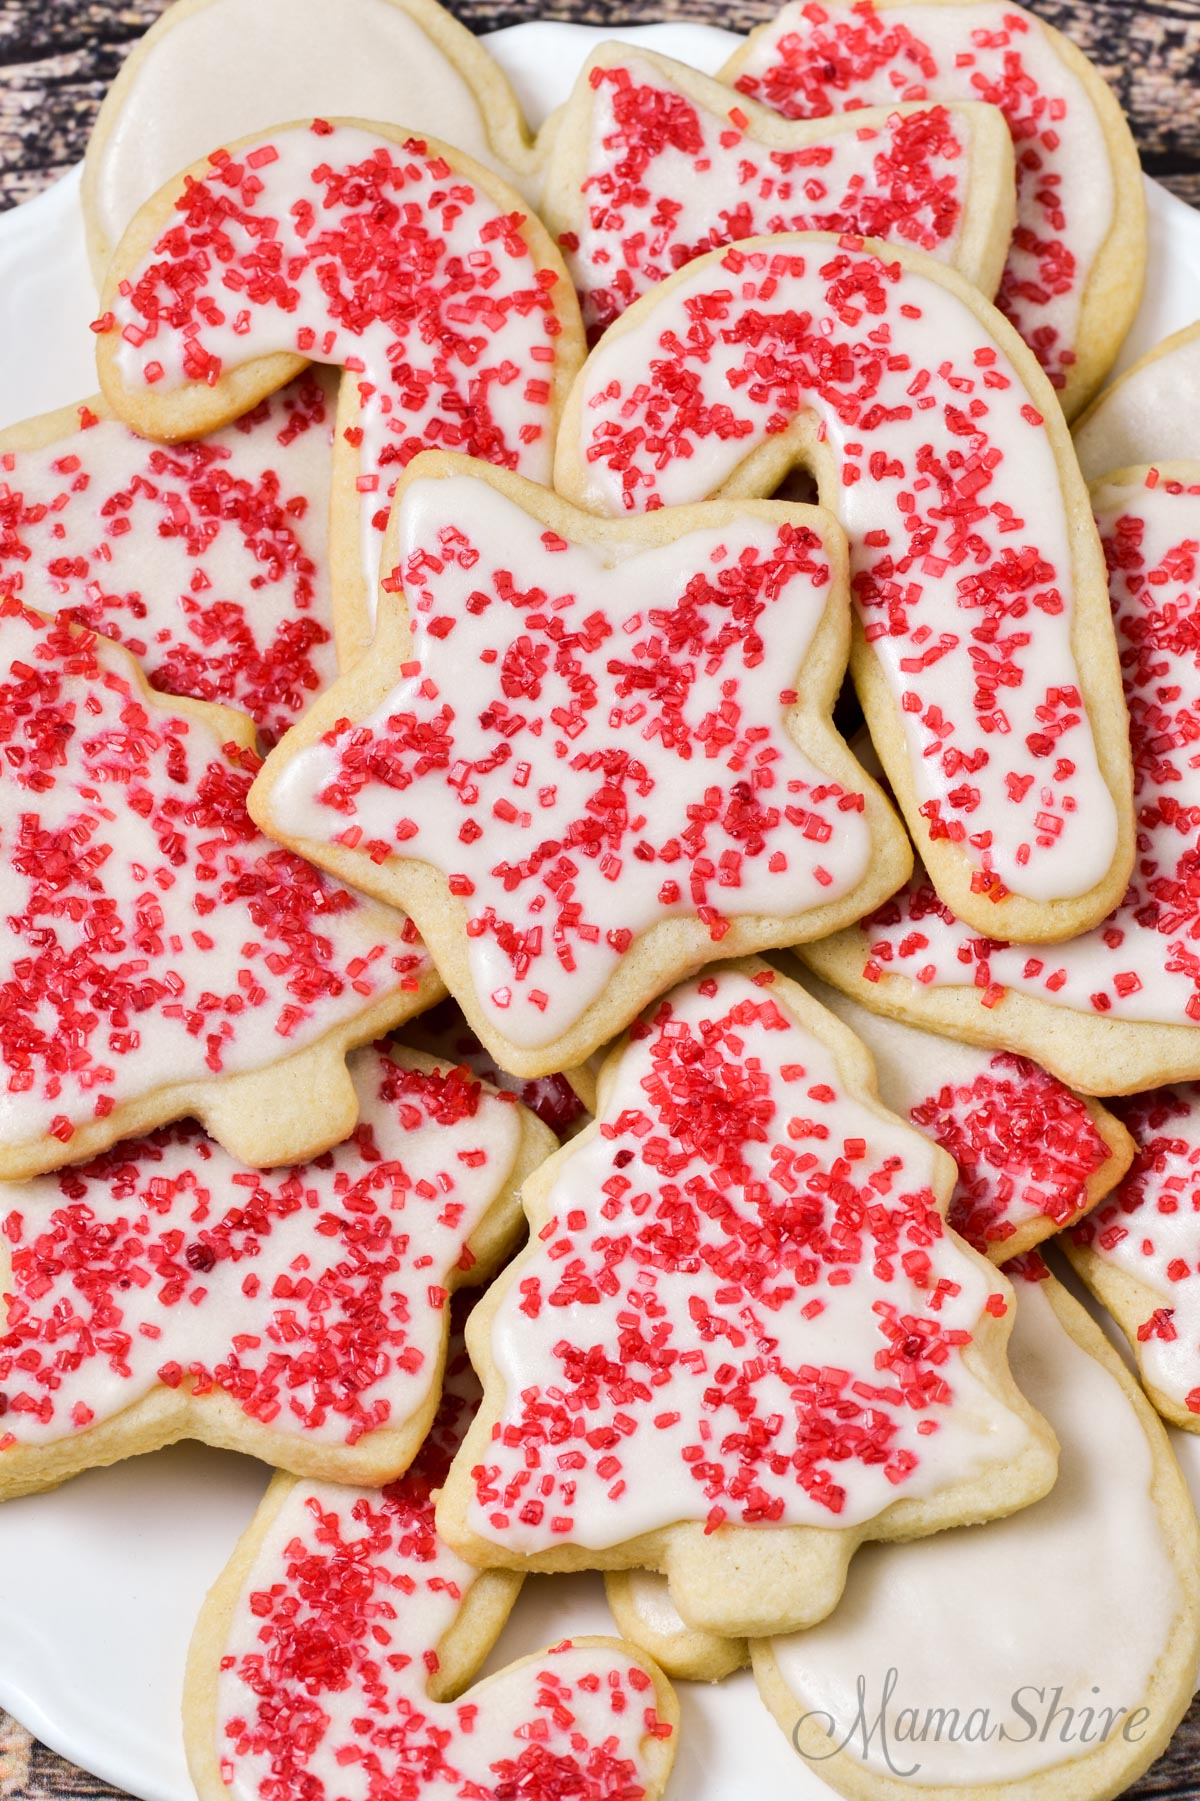 Christmas cut-out cookies made with a gluten-free vanilla sugar cookie recipe.